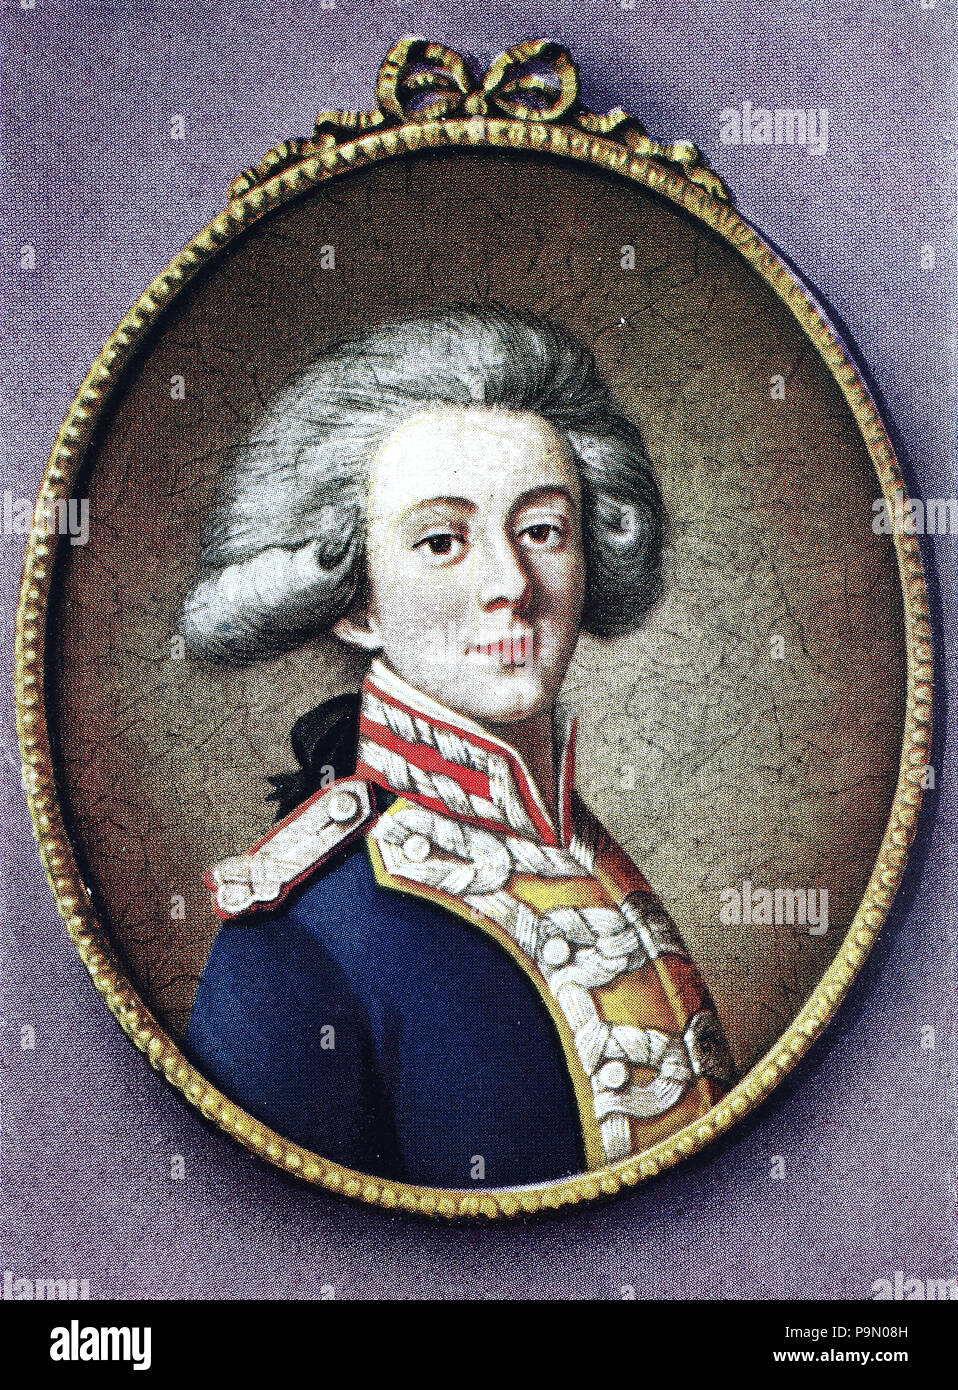 Marie-Joseph Paul Yves Roch Gilbert du Motier, Marquis de Lafayette, 6 September 1757 – 20 May 1834, in the United States often known simply as Lafayette, was a French aristocrat and military officer who fought in the American Revolutionary War, digital improved reproduction of an original print from the year 1900 - Stock Image